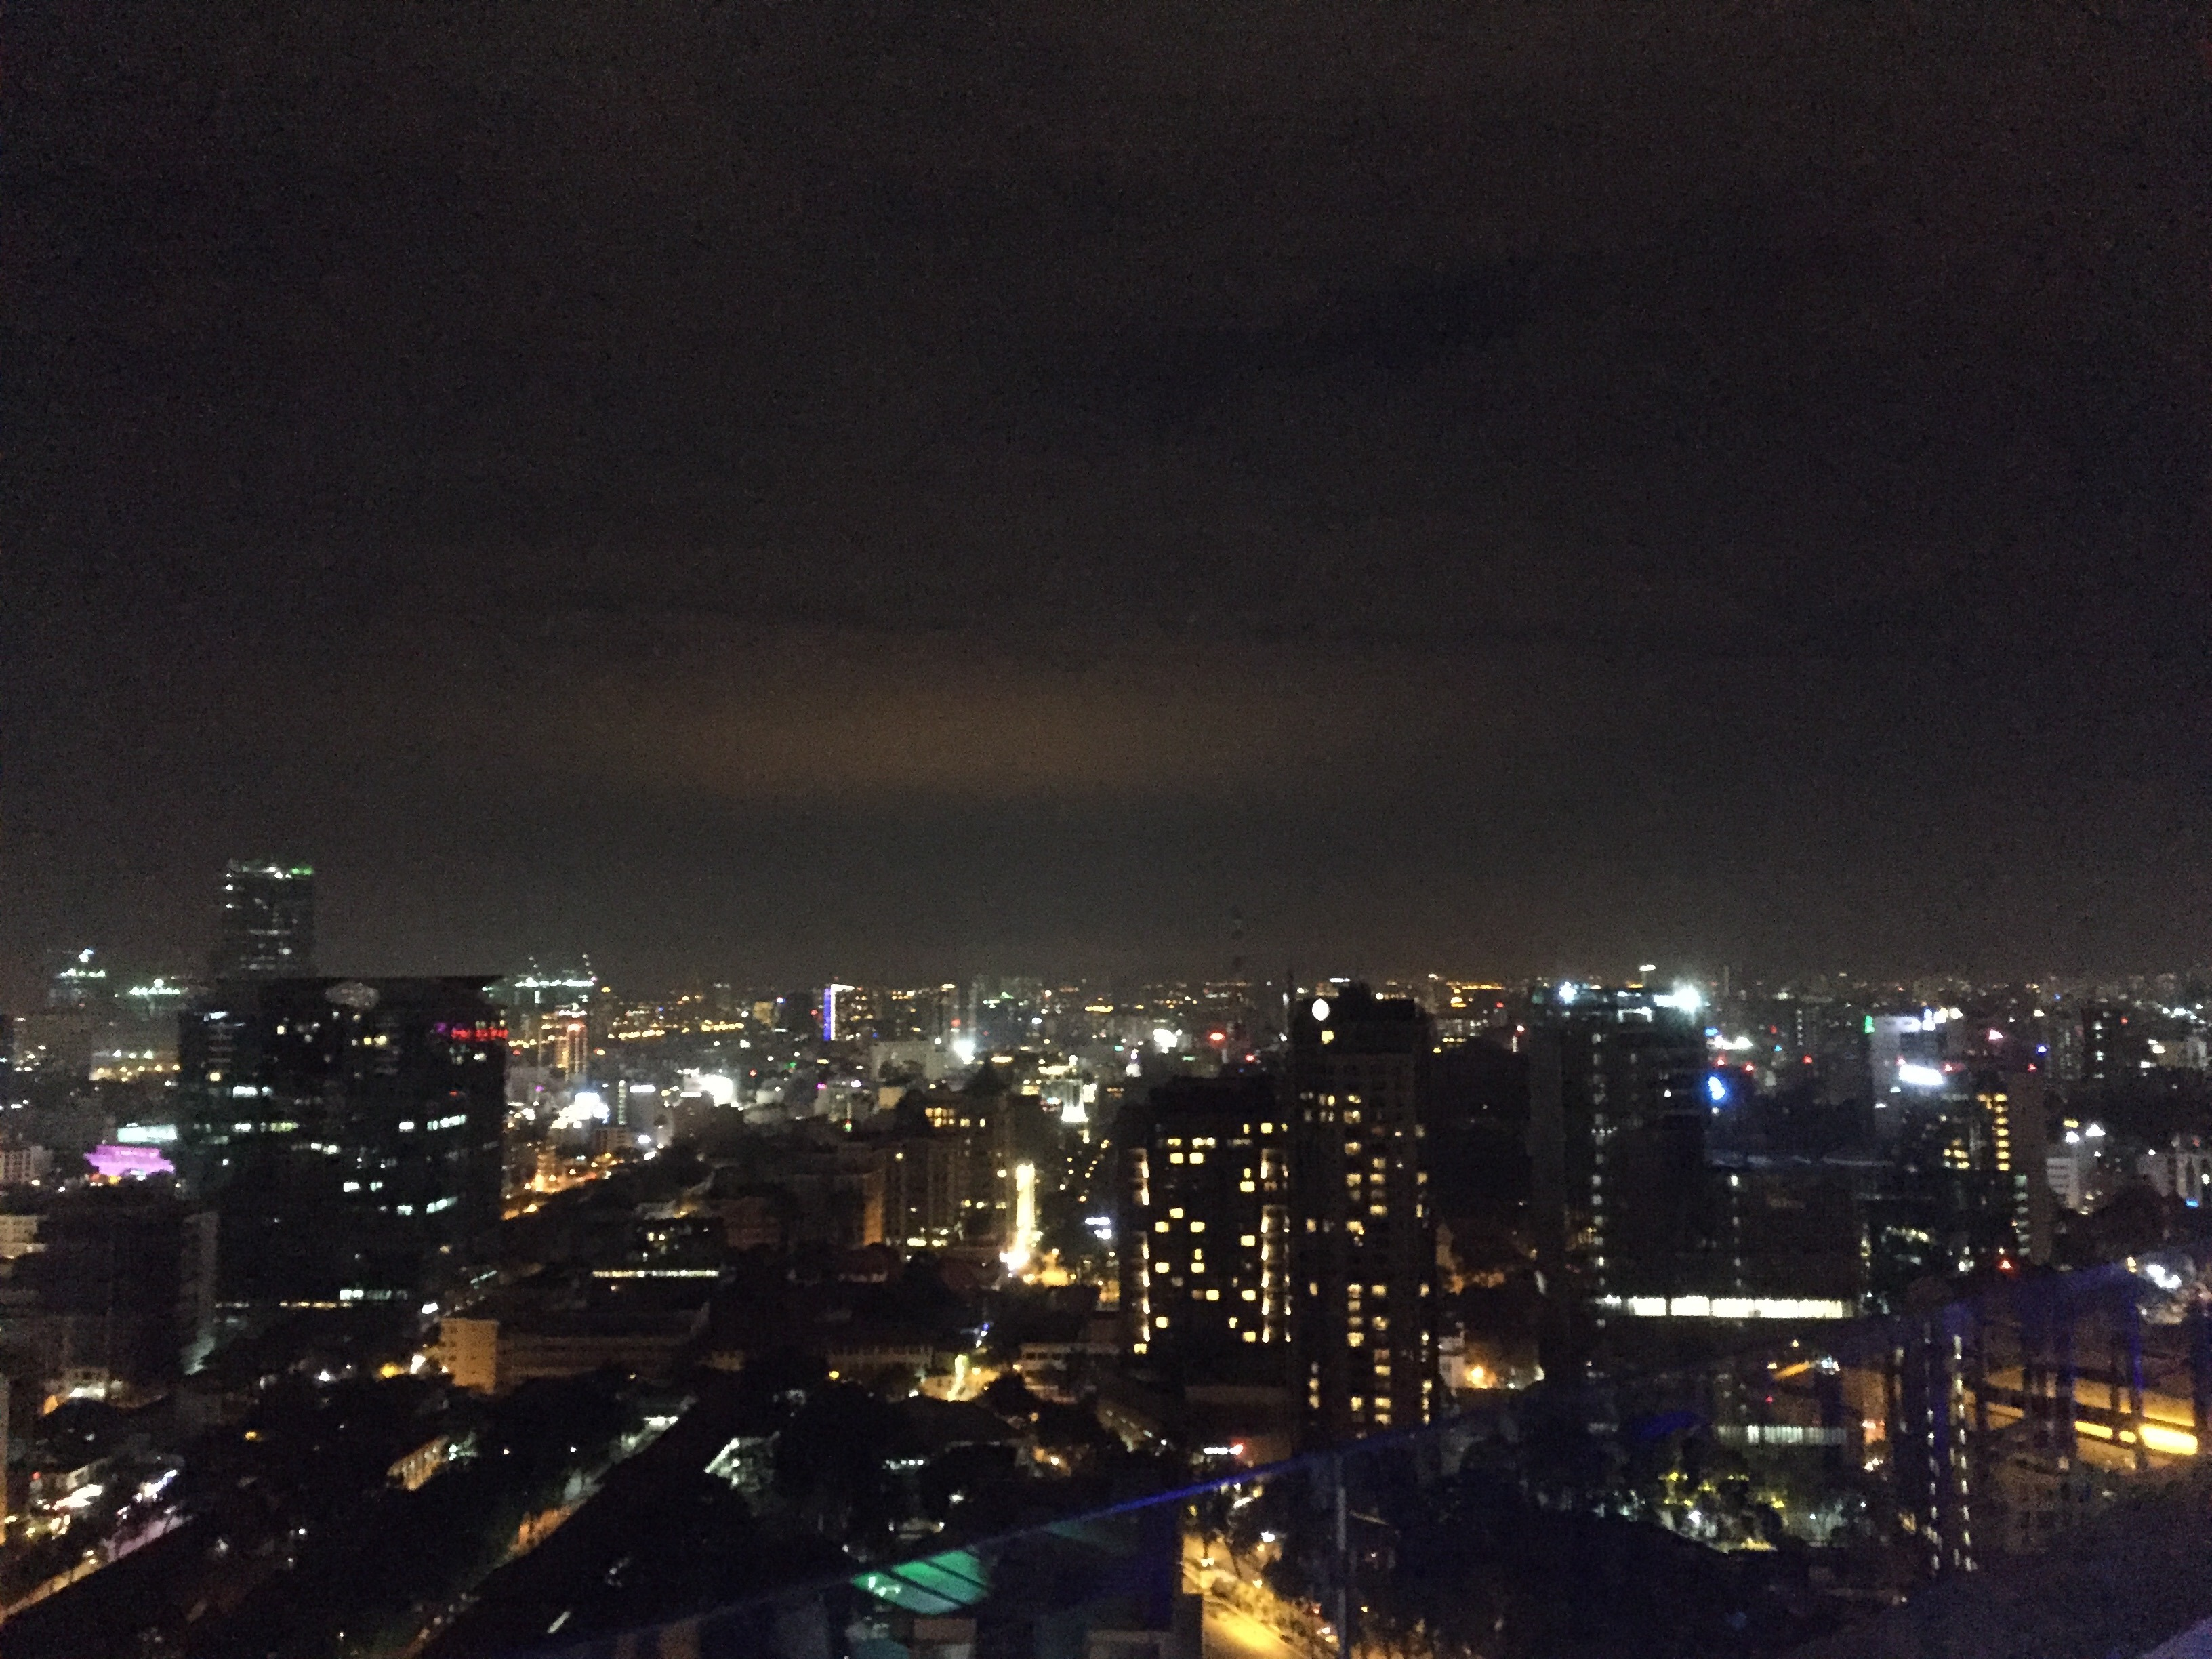 Oneplus Rooftop Beer Club